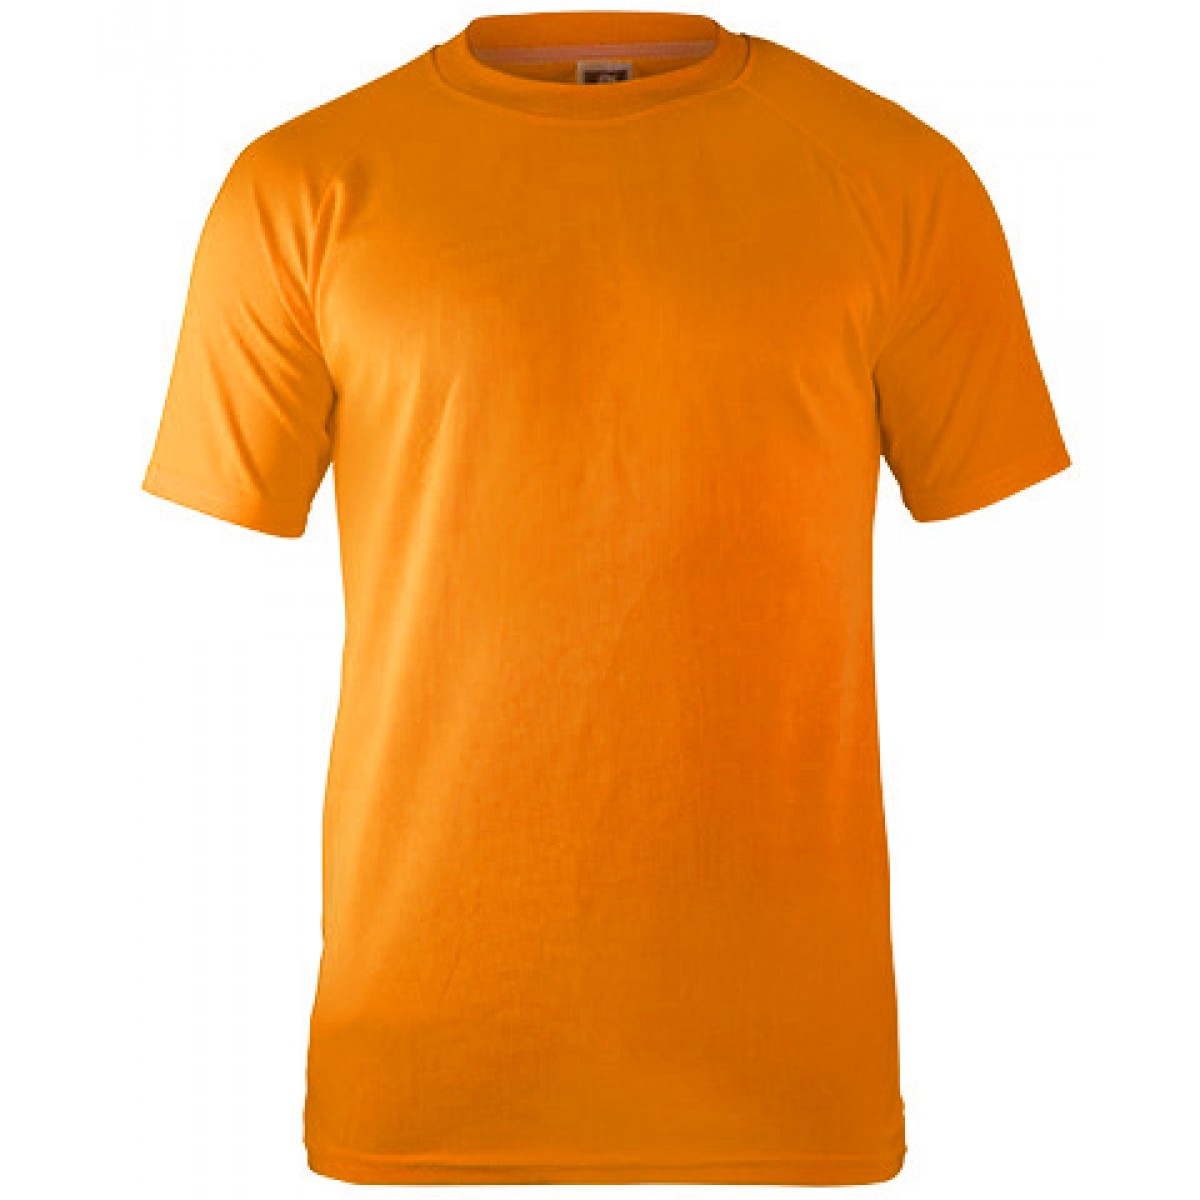 Short Sleeves Mesh Performance T-shirt-Safety Orange-YM